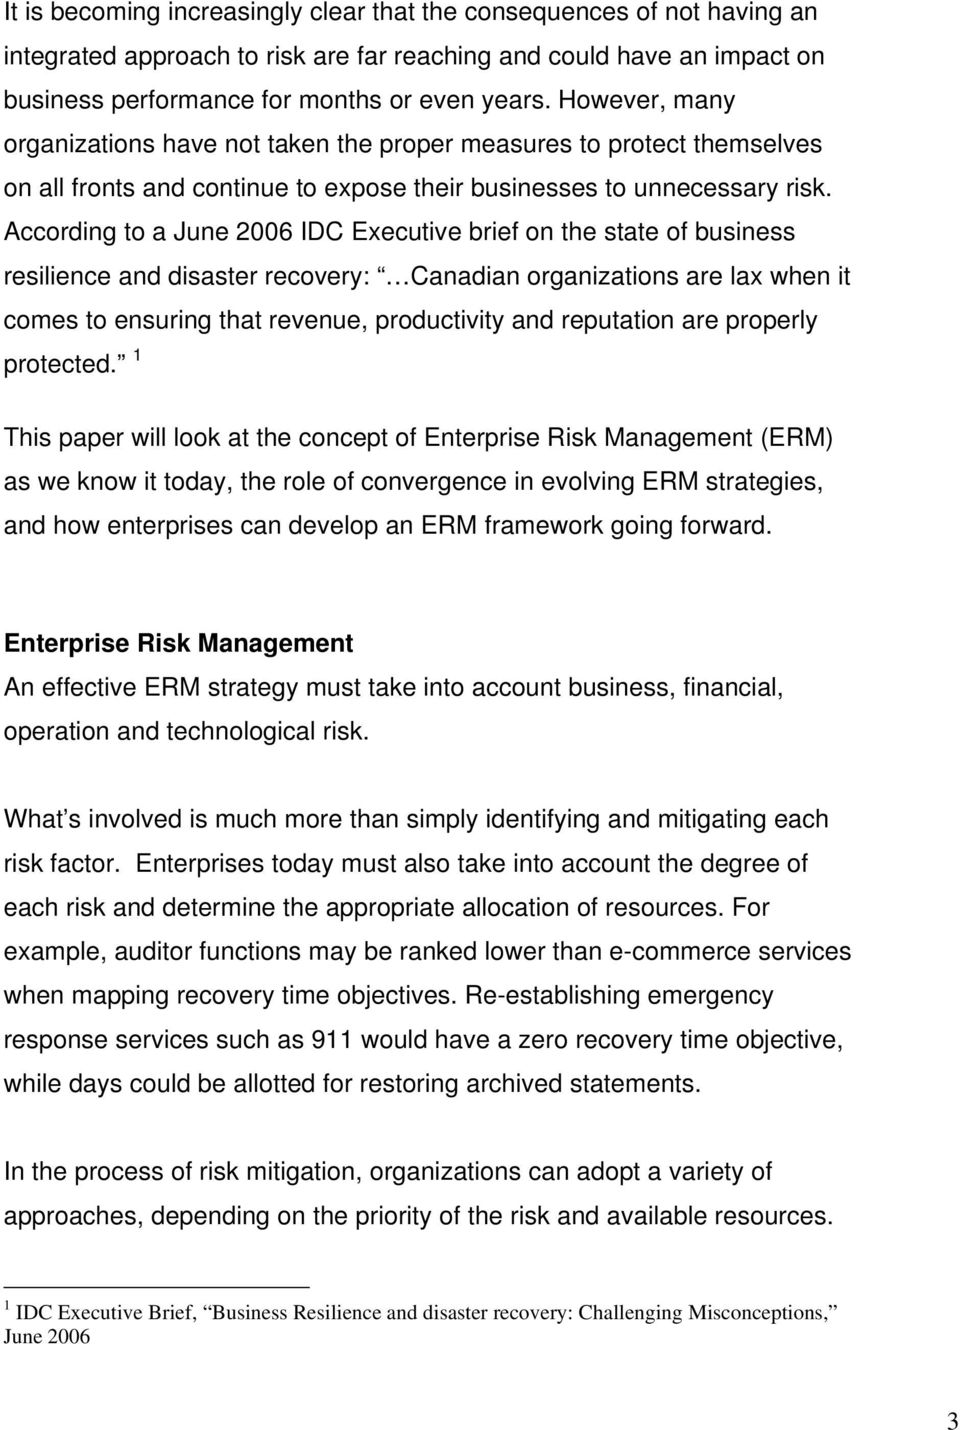 According to a June 2006 IDC Executive brief on the state of business resilience and disaster recovery: Canadian organizations are lax when it comes to ensuring that revenue, productivity and